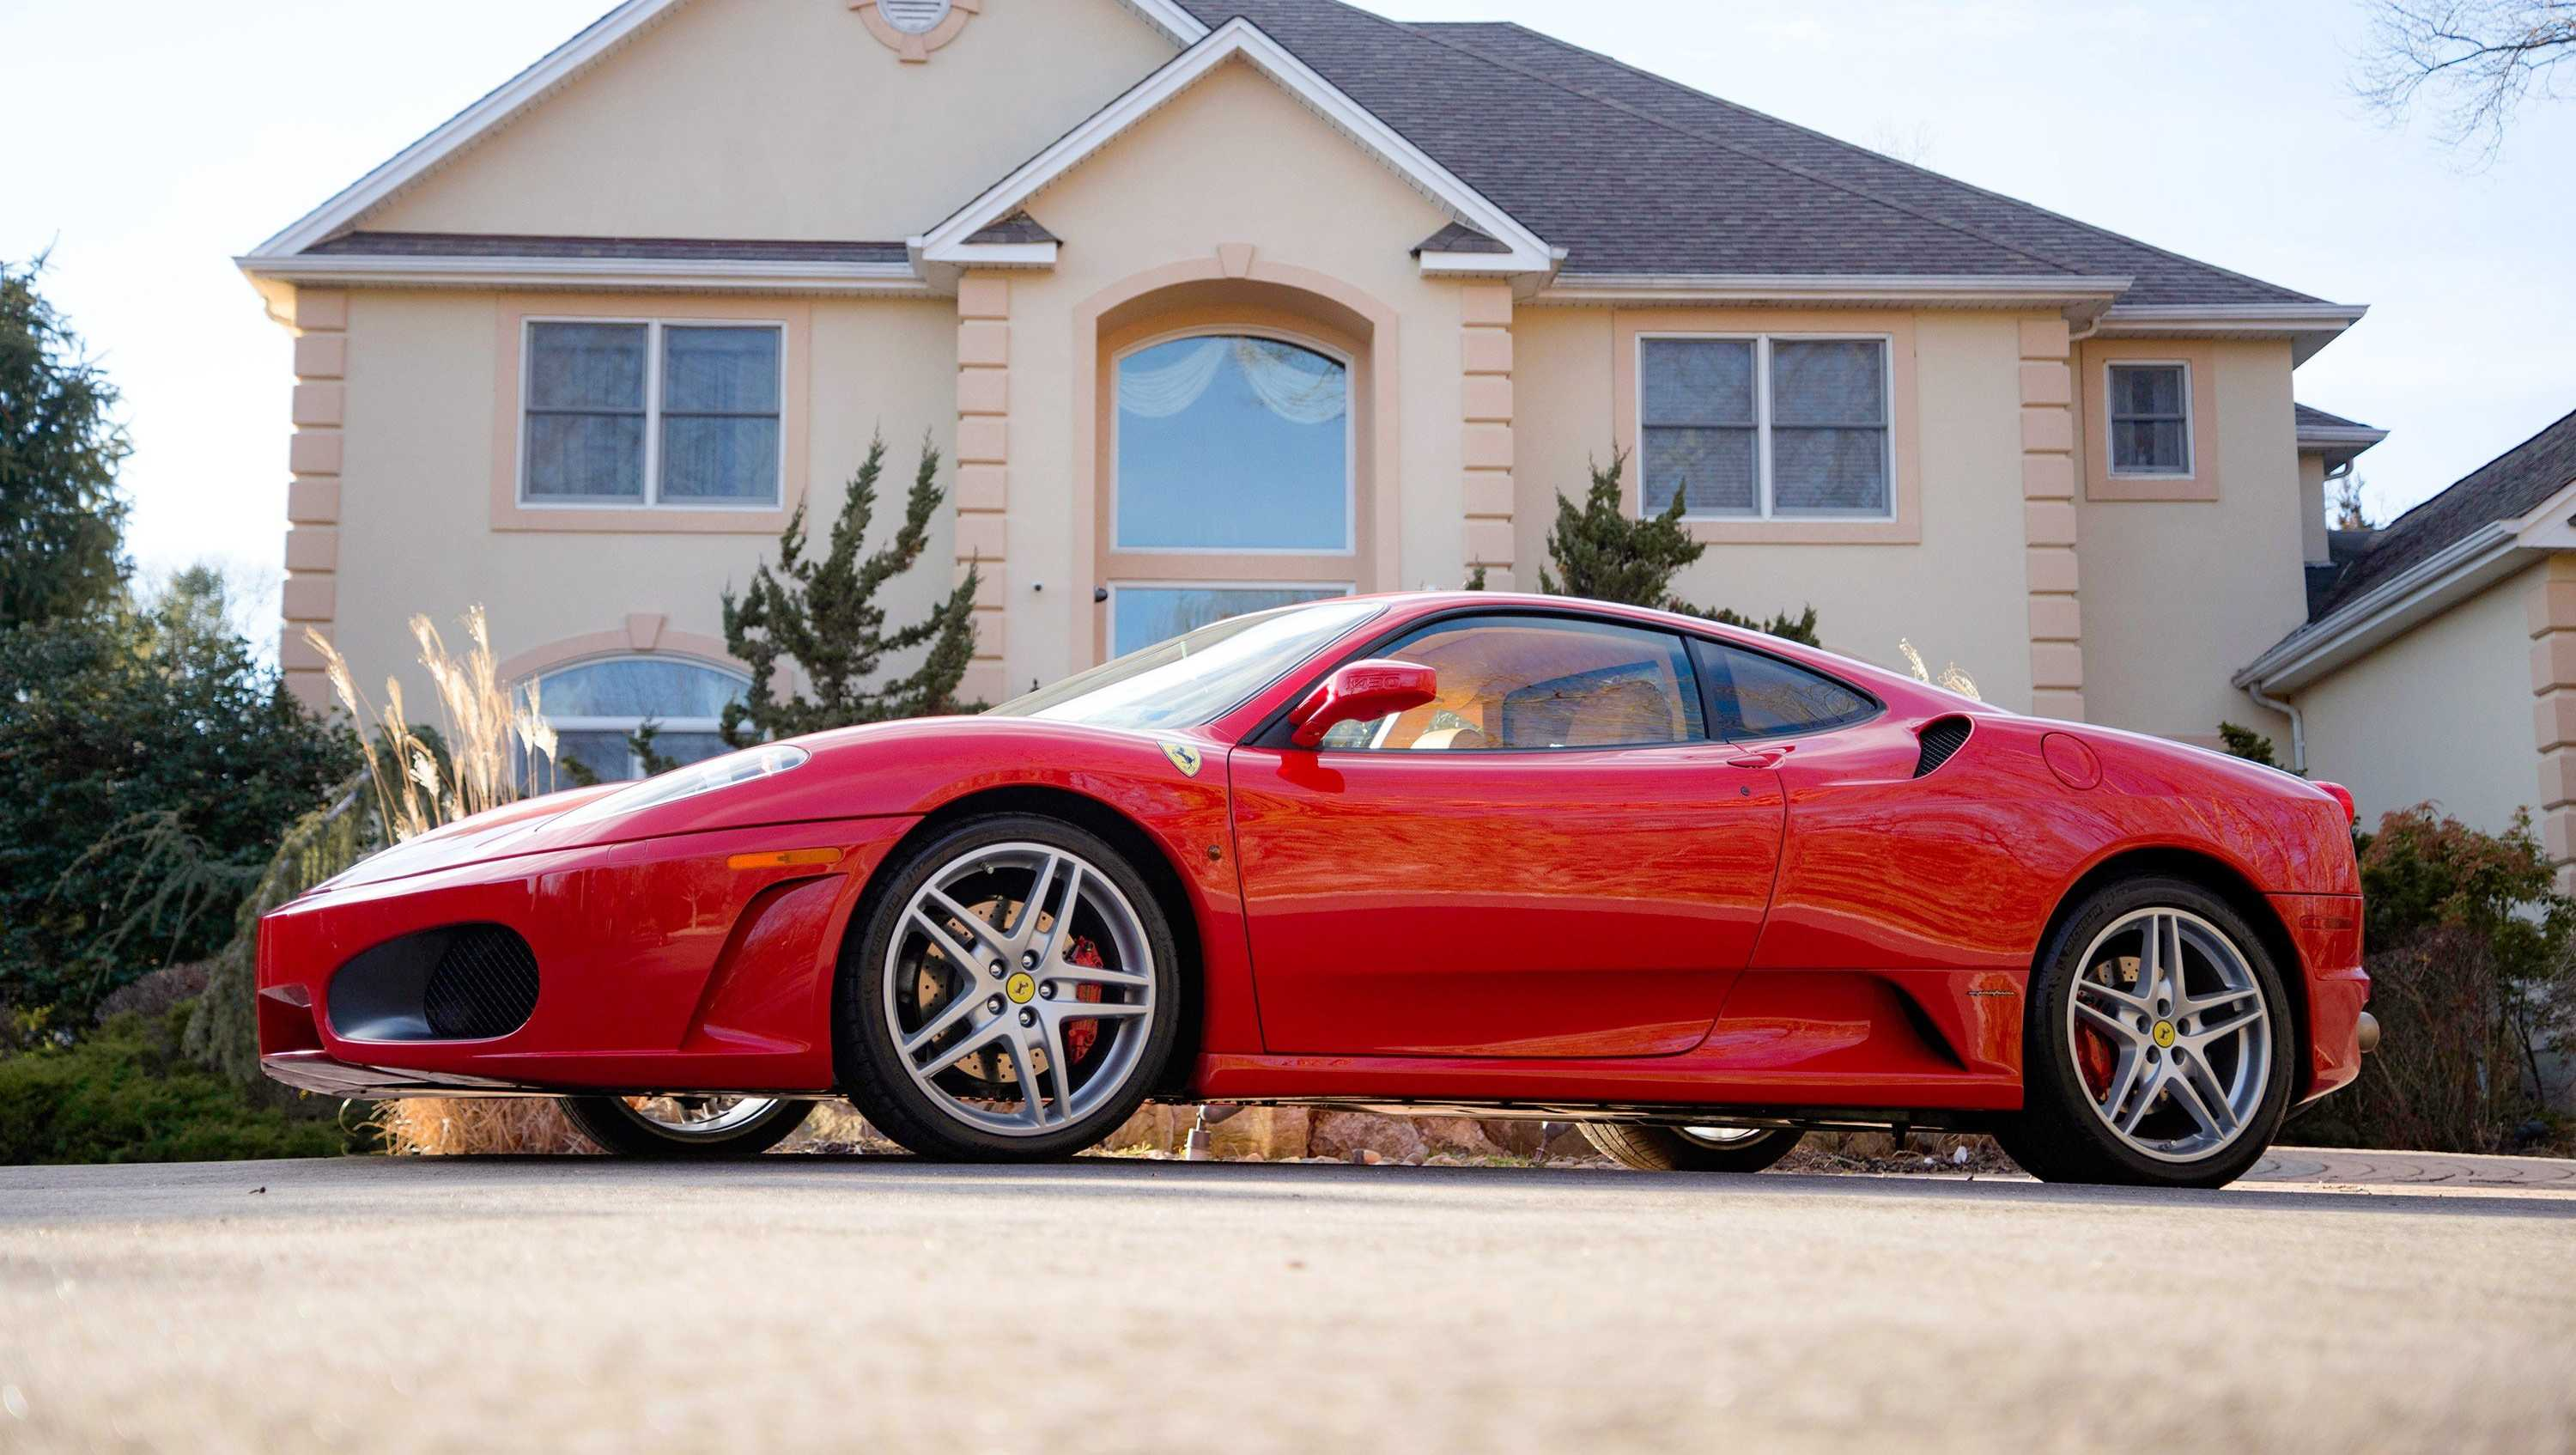 A Ferrari formerly owned by President Trump is hitting the auction block next month. It's expected to fetch $250,000 to $350,000 at Auctions America's Fort Lauderdale event on April 1.